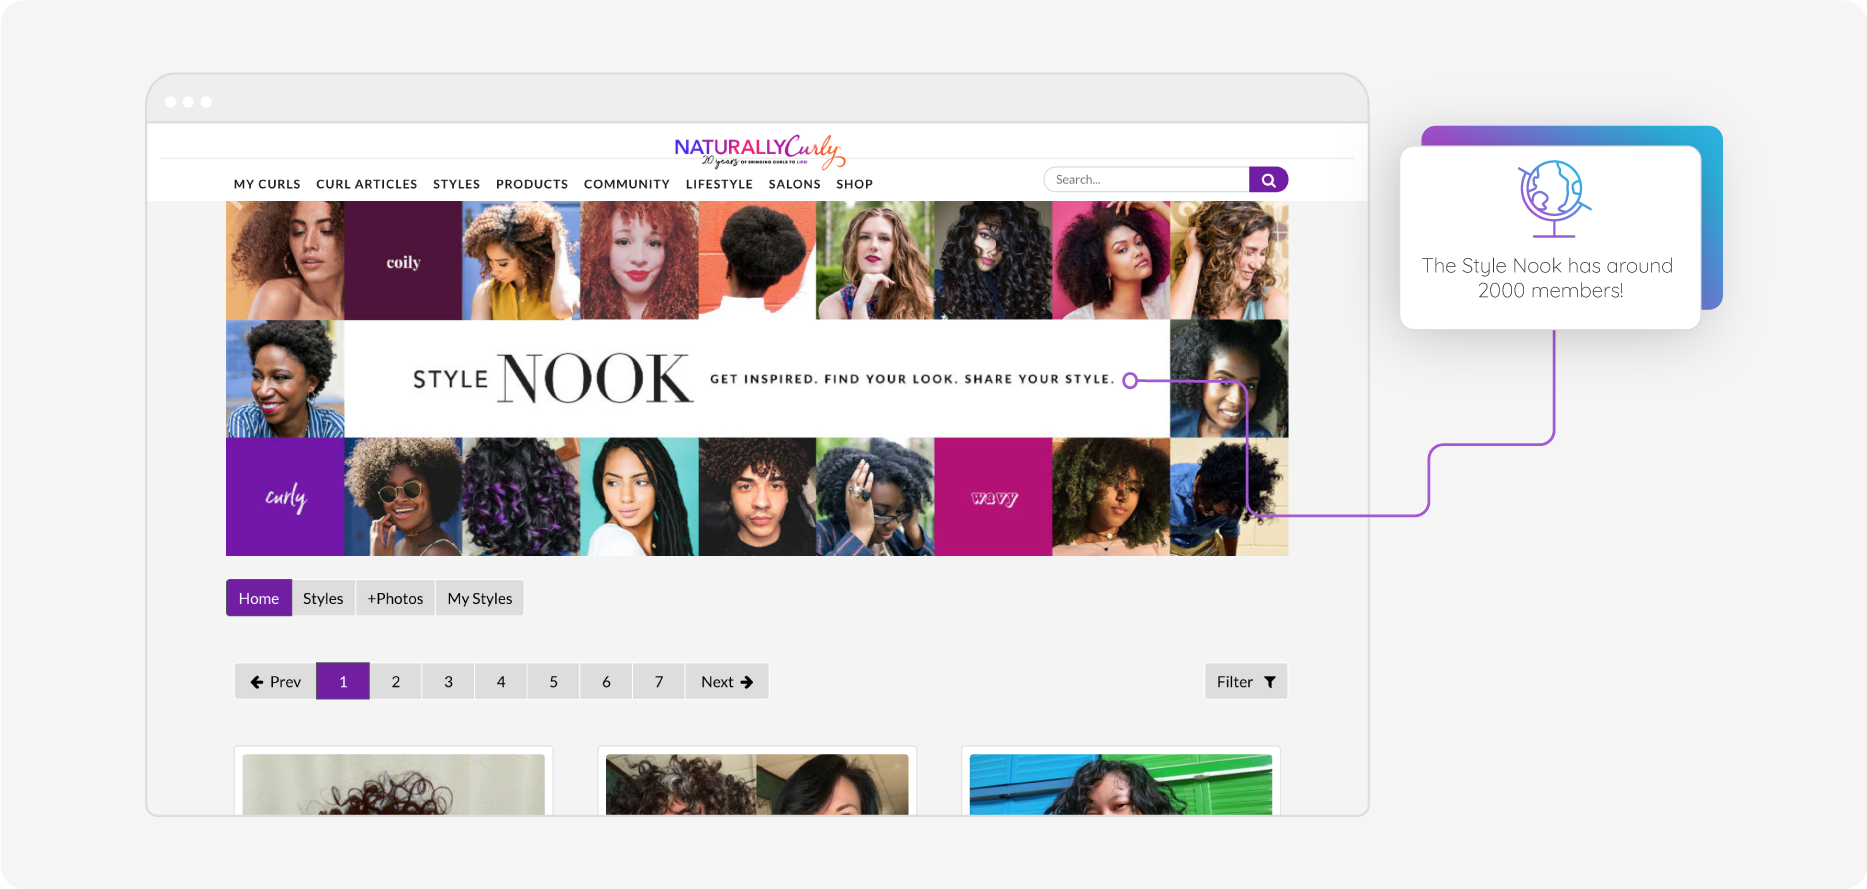 Naturally Curly's online community, the Style Nook